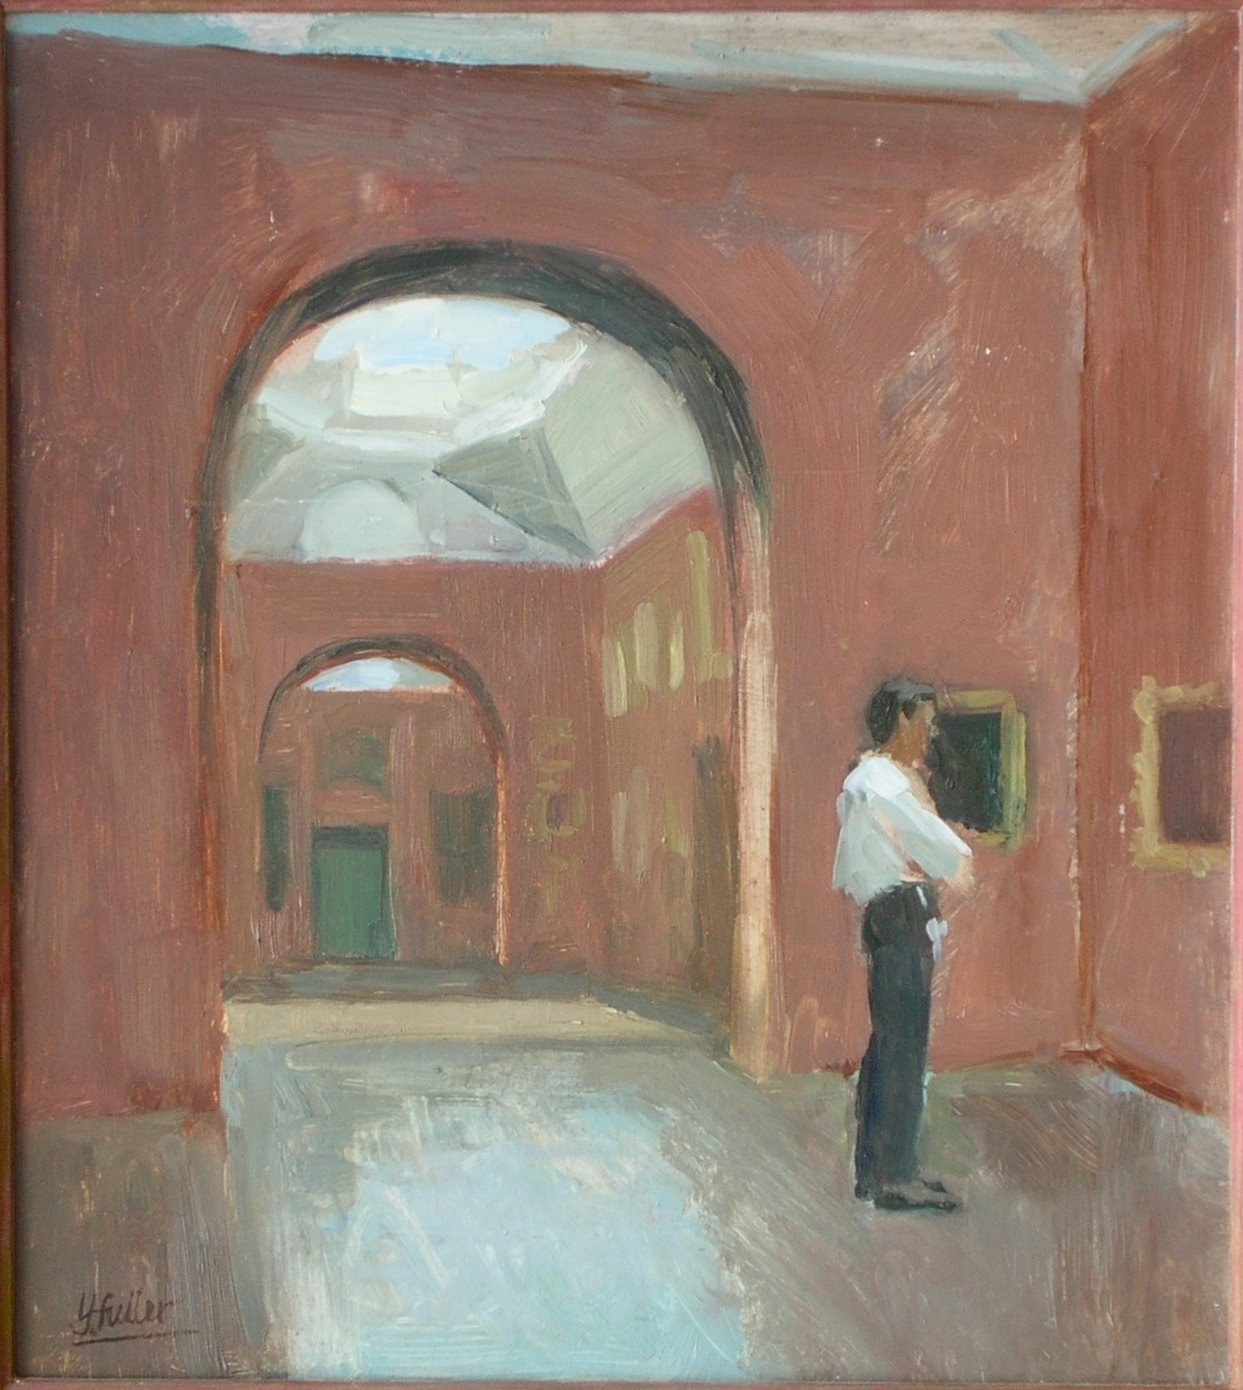 Dulwich Picture Gallery, closing time